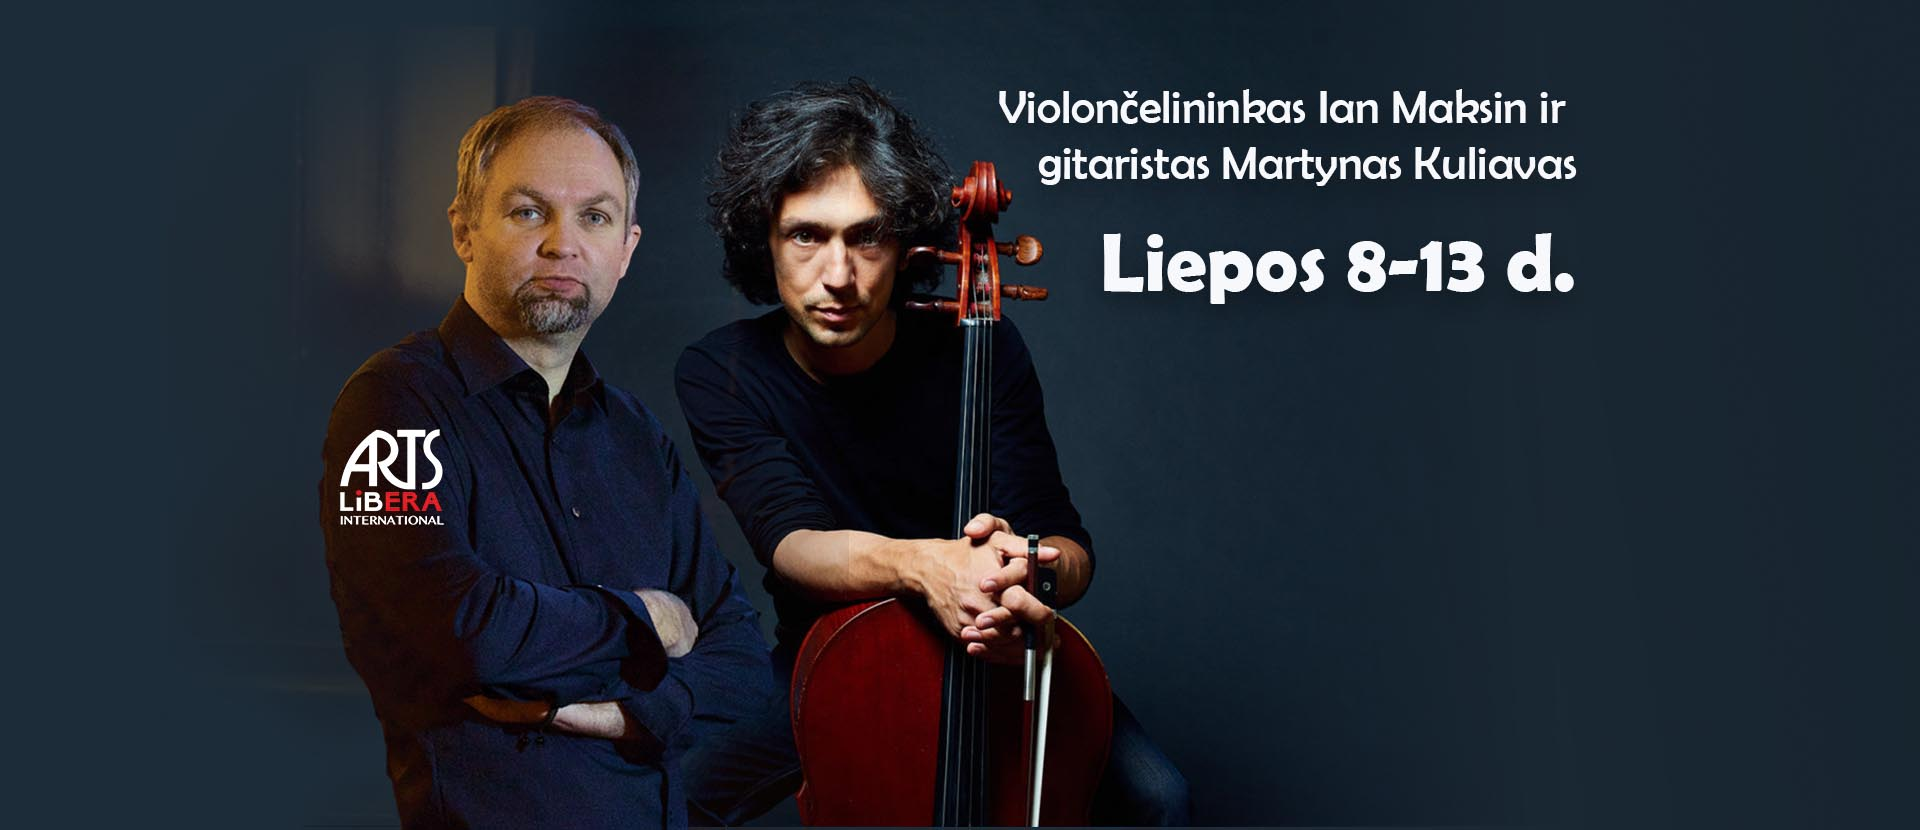 Cellist Ian Maksin and guitarist Martynas Kuliavas